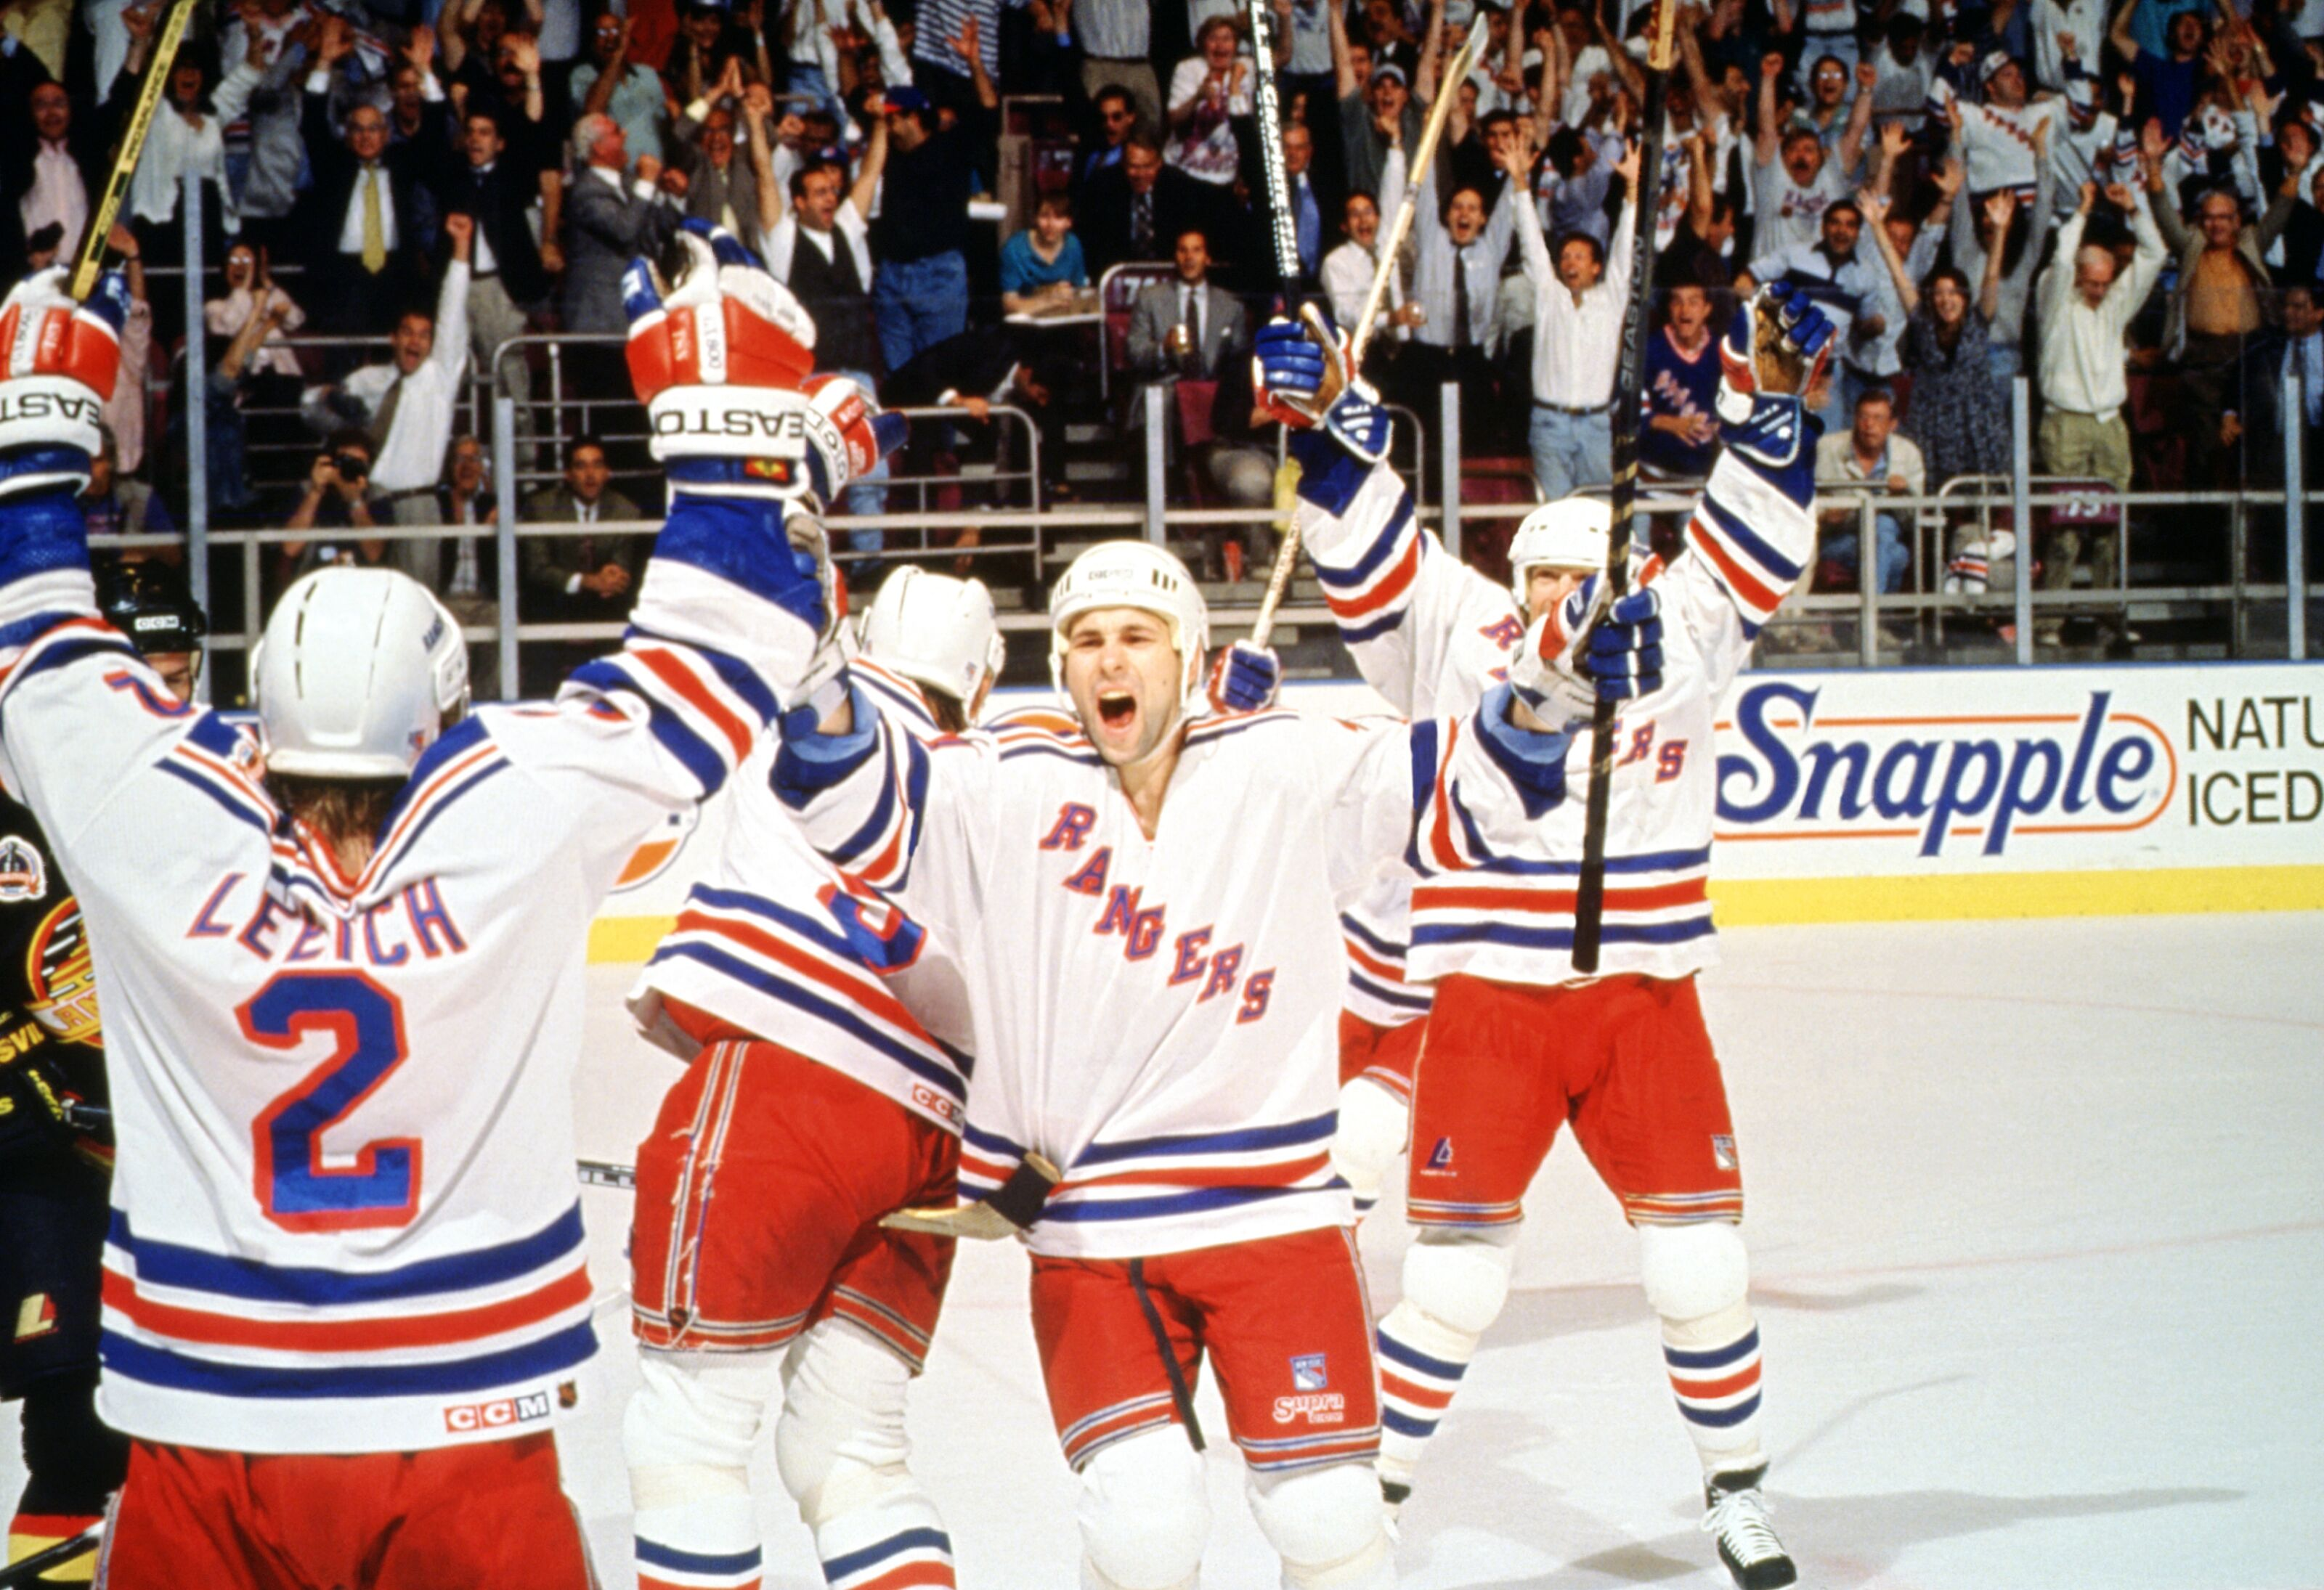 New York Rangers: Sergei Zubov finally going into the Hall of Fame